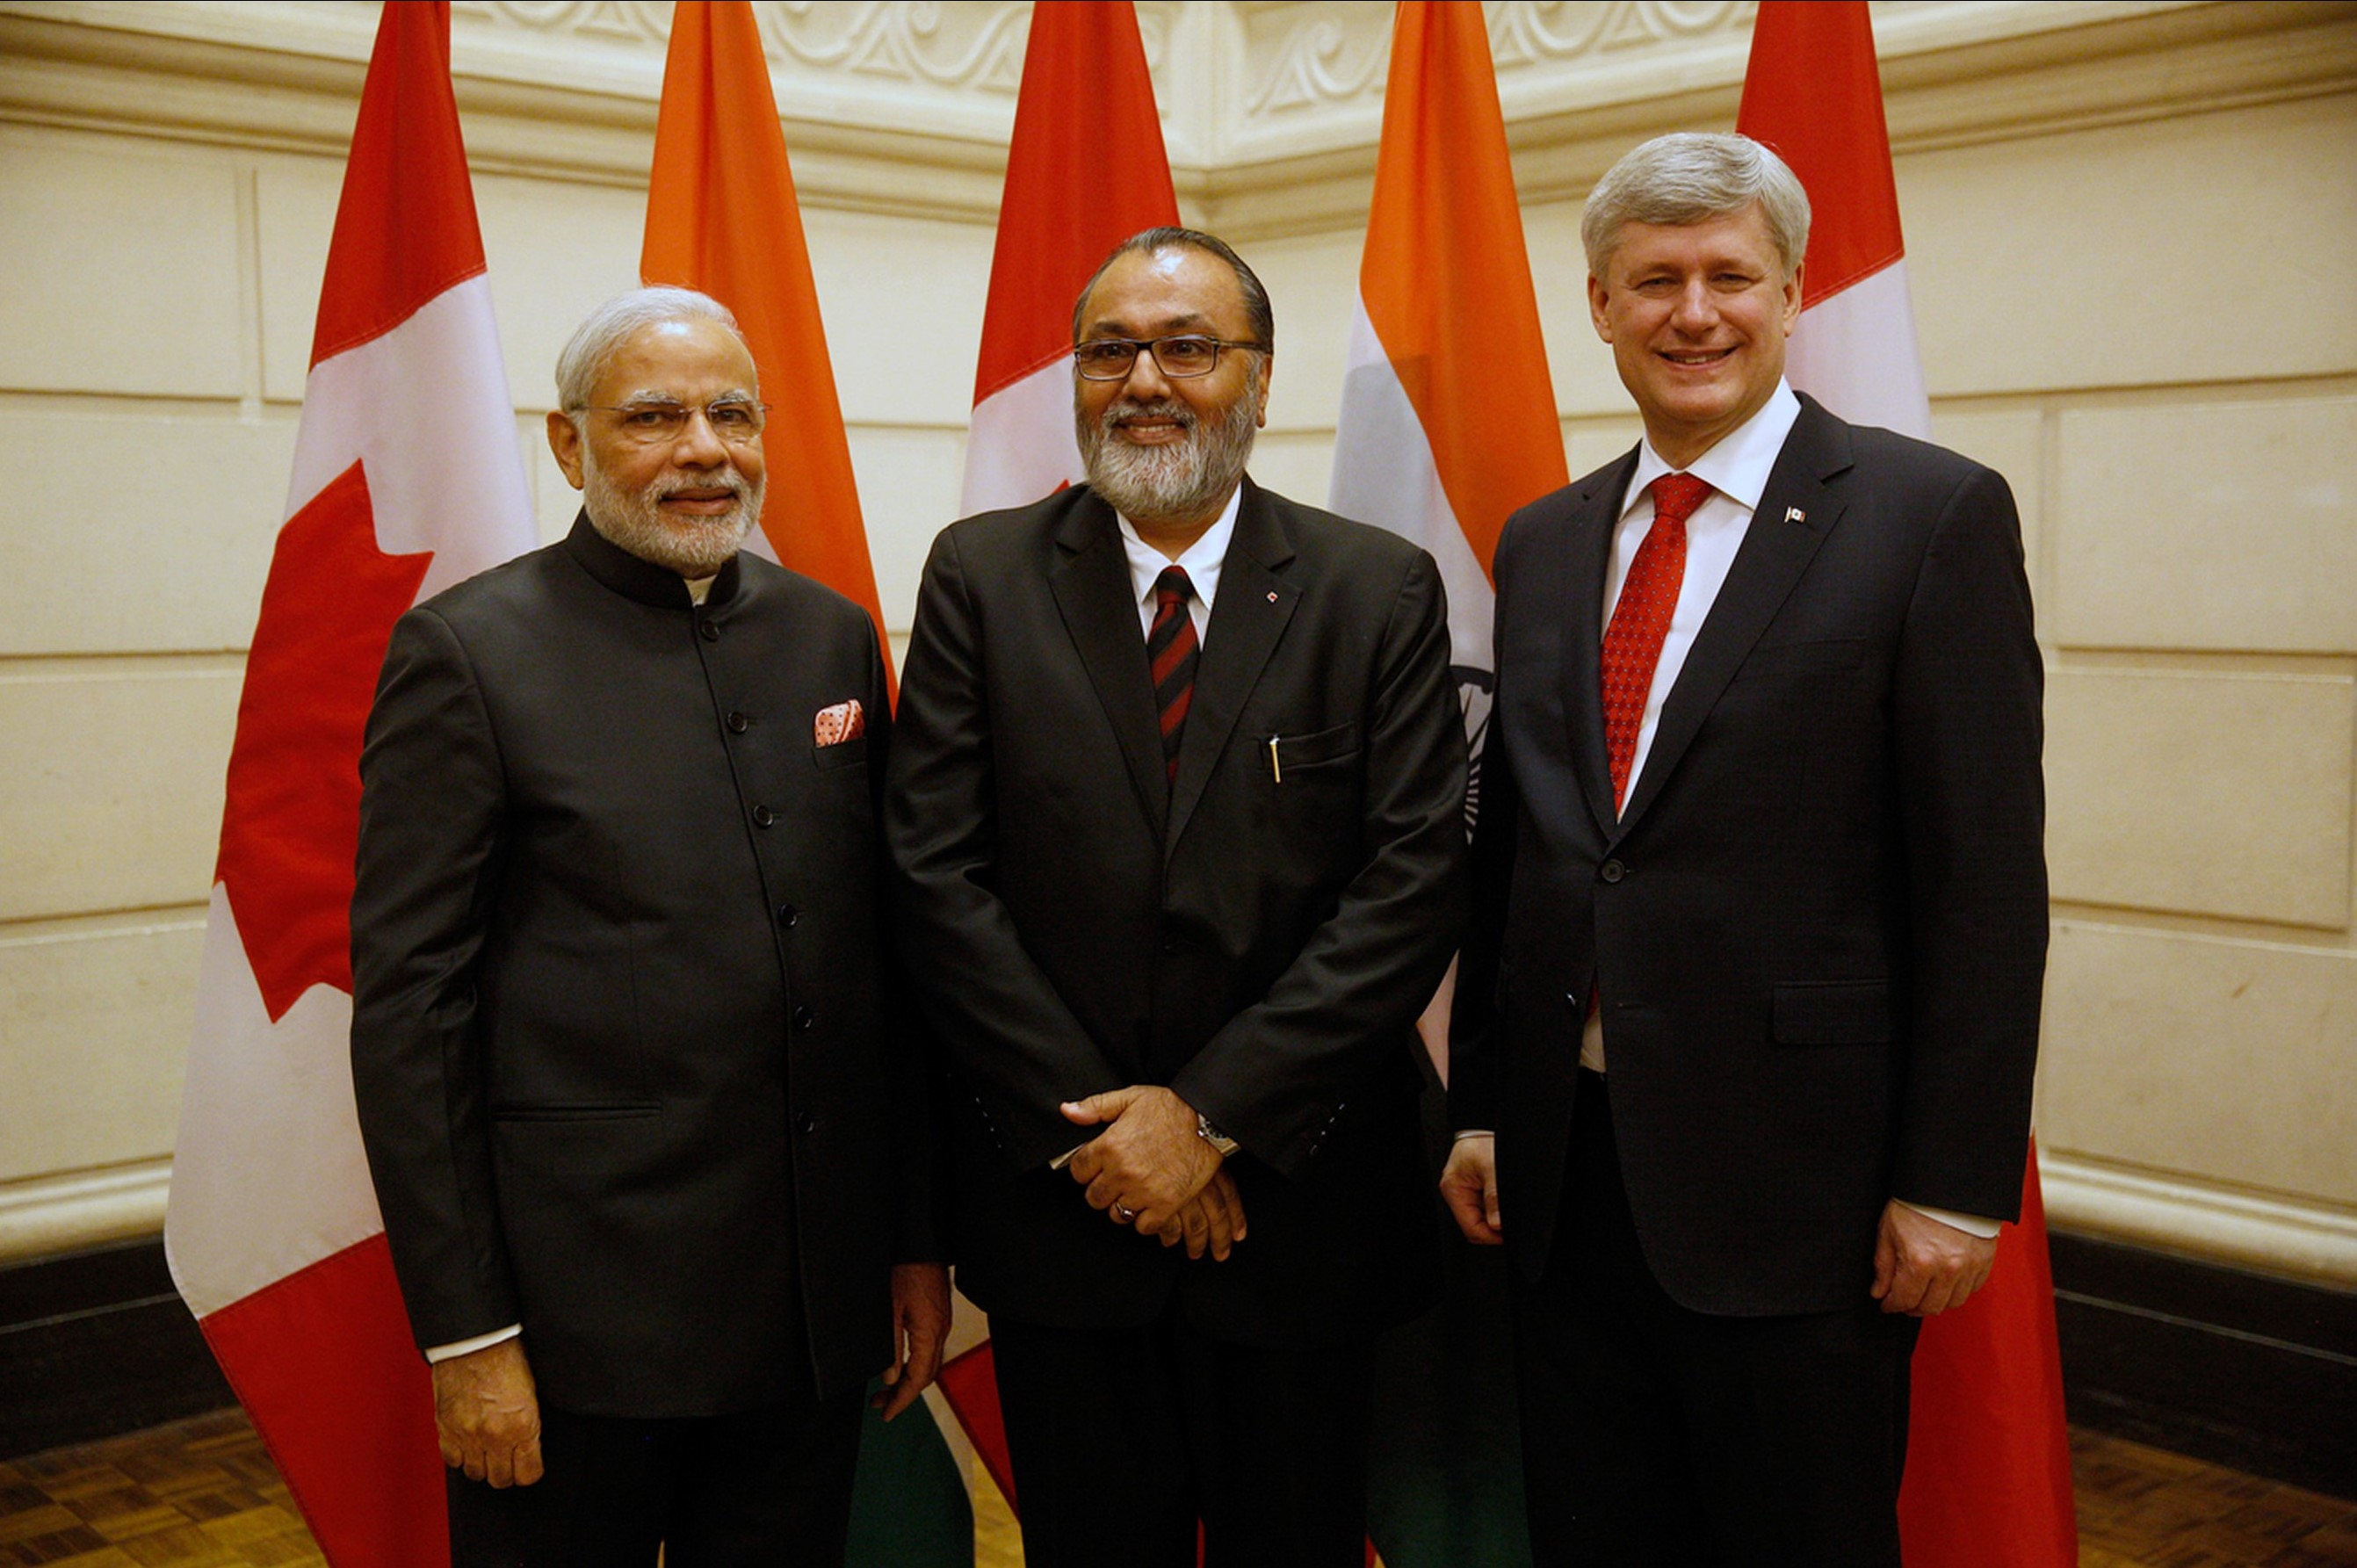 Daljit Nirman with the Prime Minister of India and Prime Minister of Canada